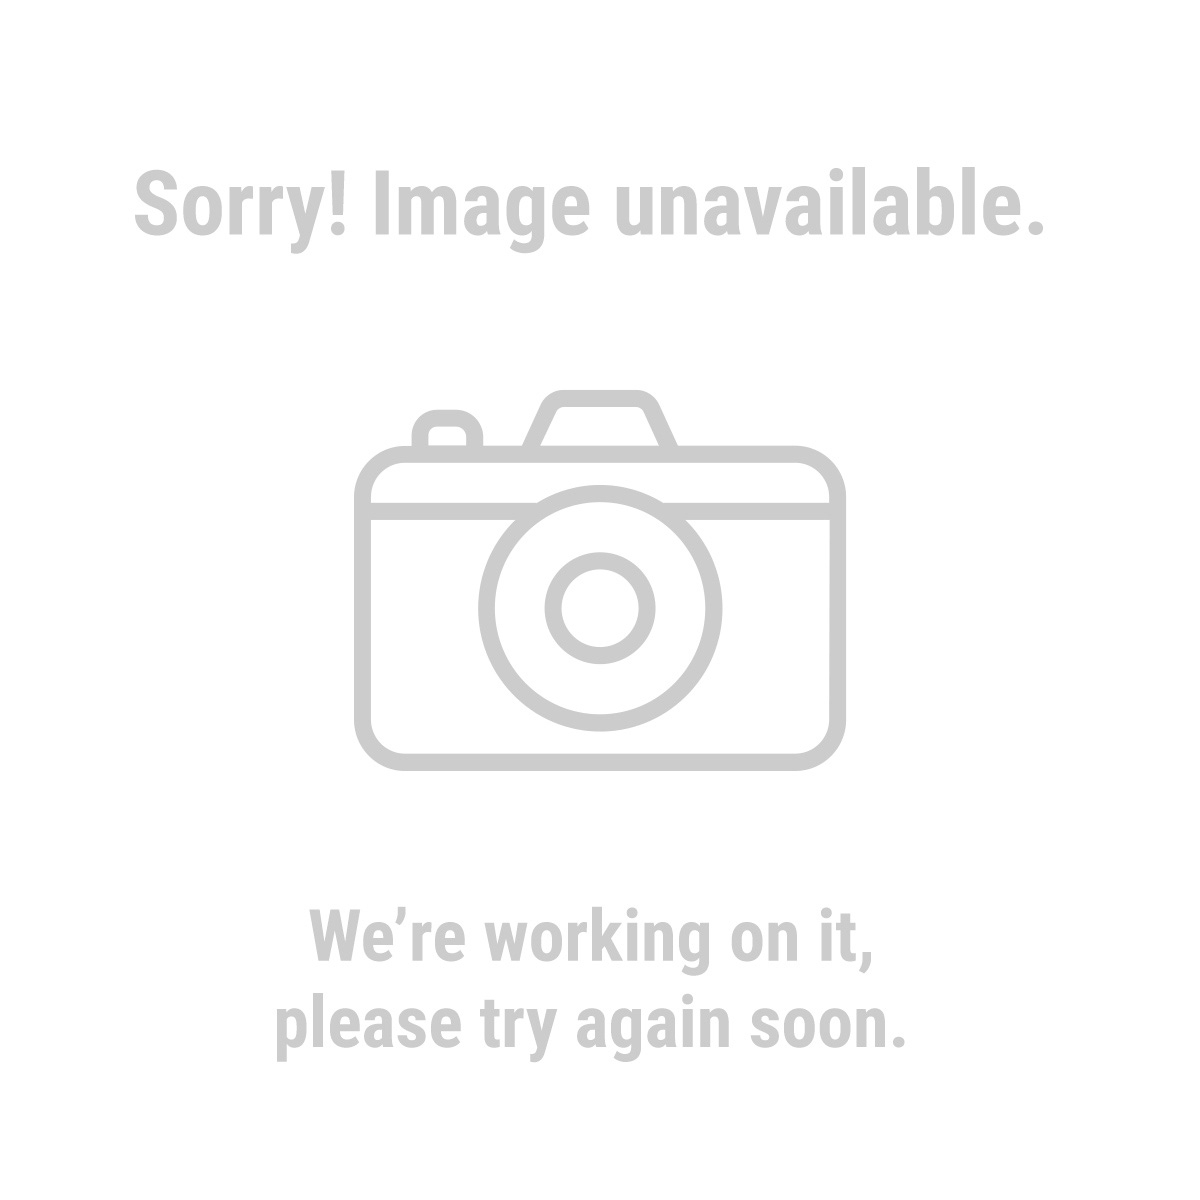 Chicago Electric Power Tools 62427 18 Volt 1/2 in. Cordless Variable Speed Drill/Driver